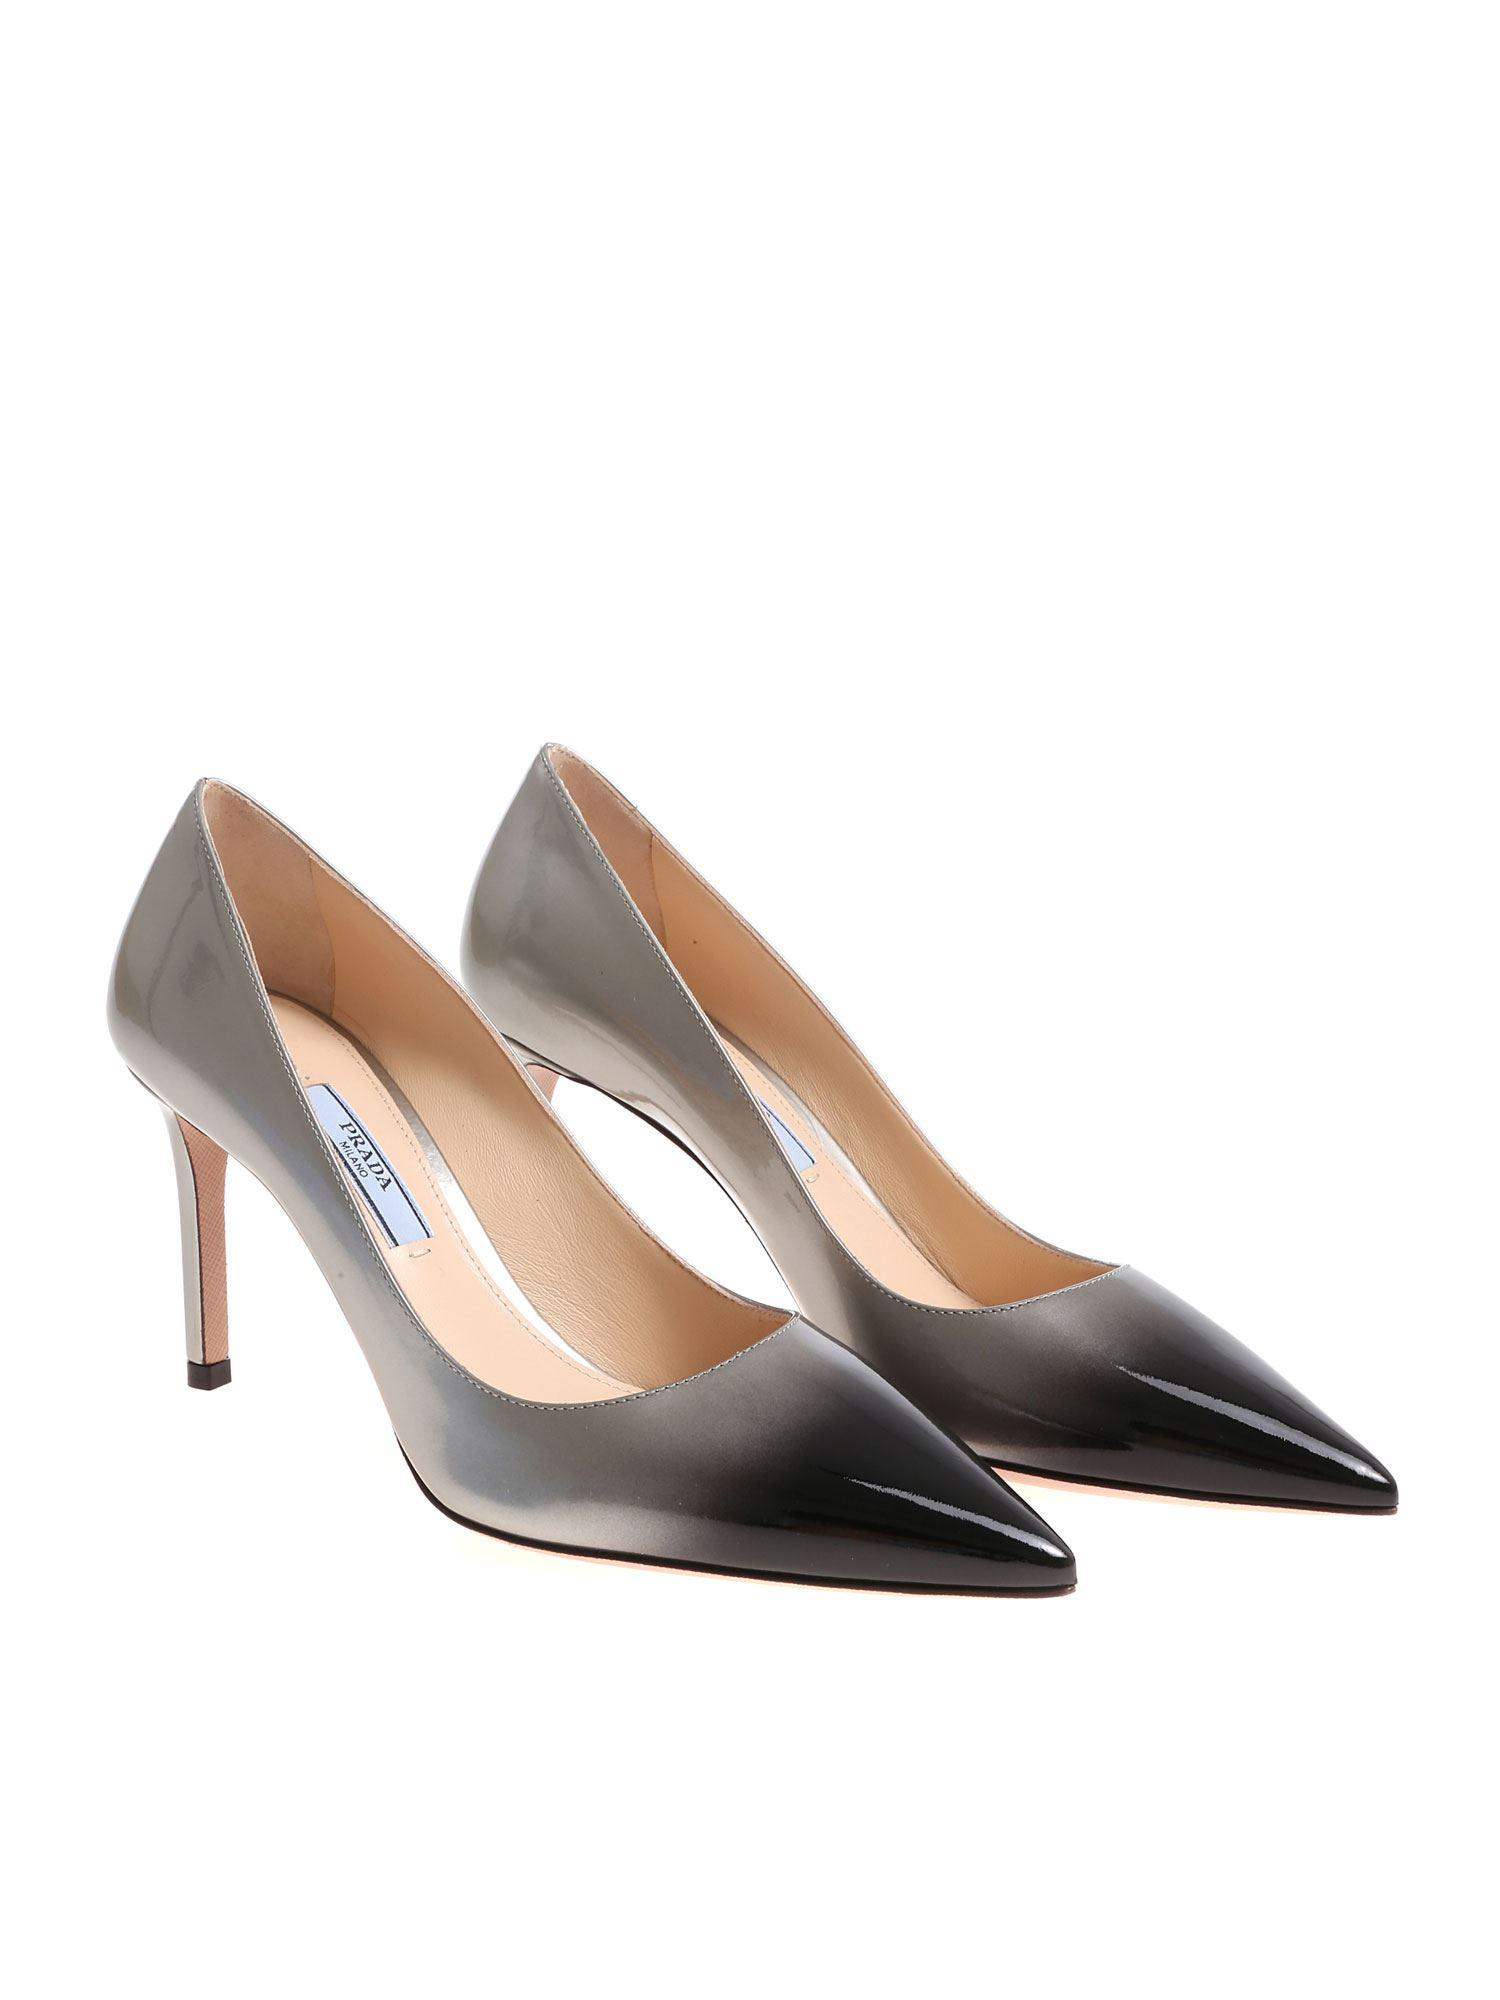 1887fa2a2dc1 Prada - Gray Patent Leather Pumps - Lyst. View fullscreen